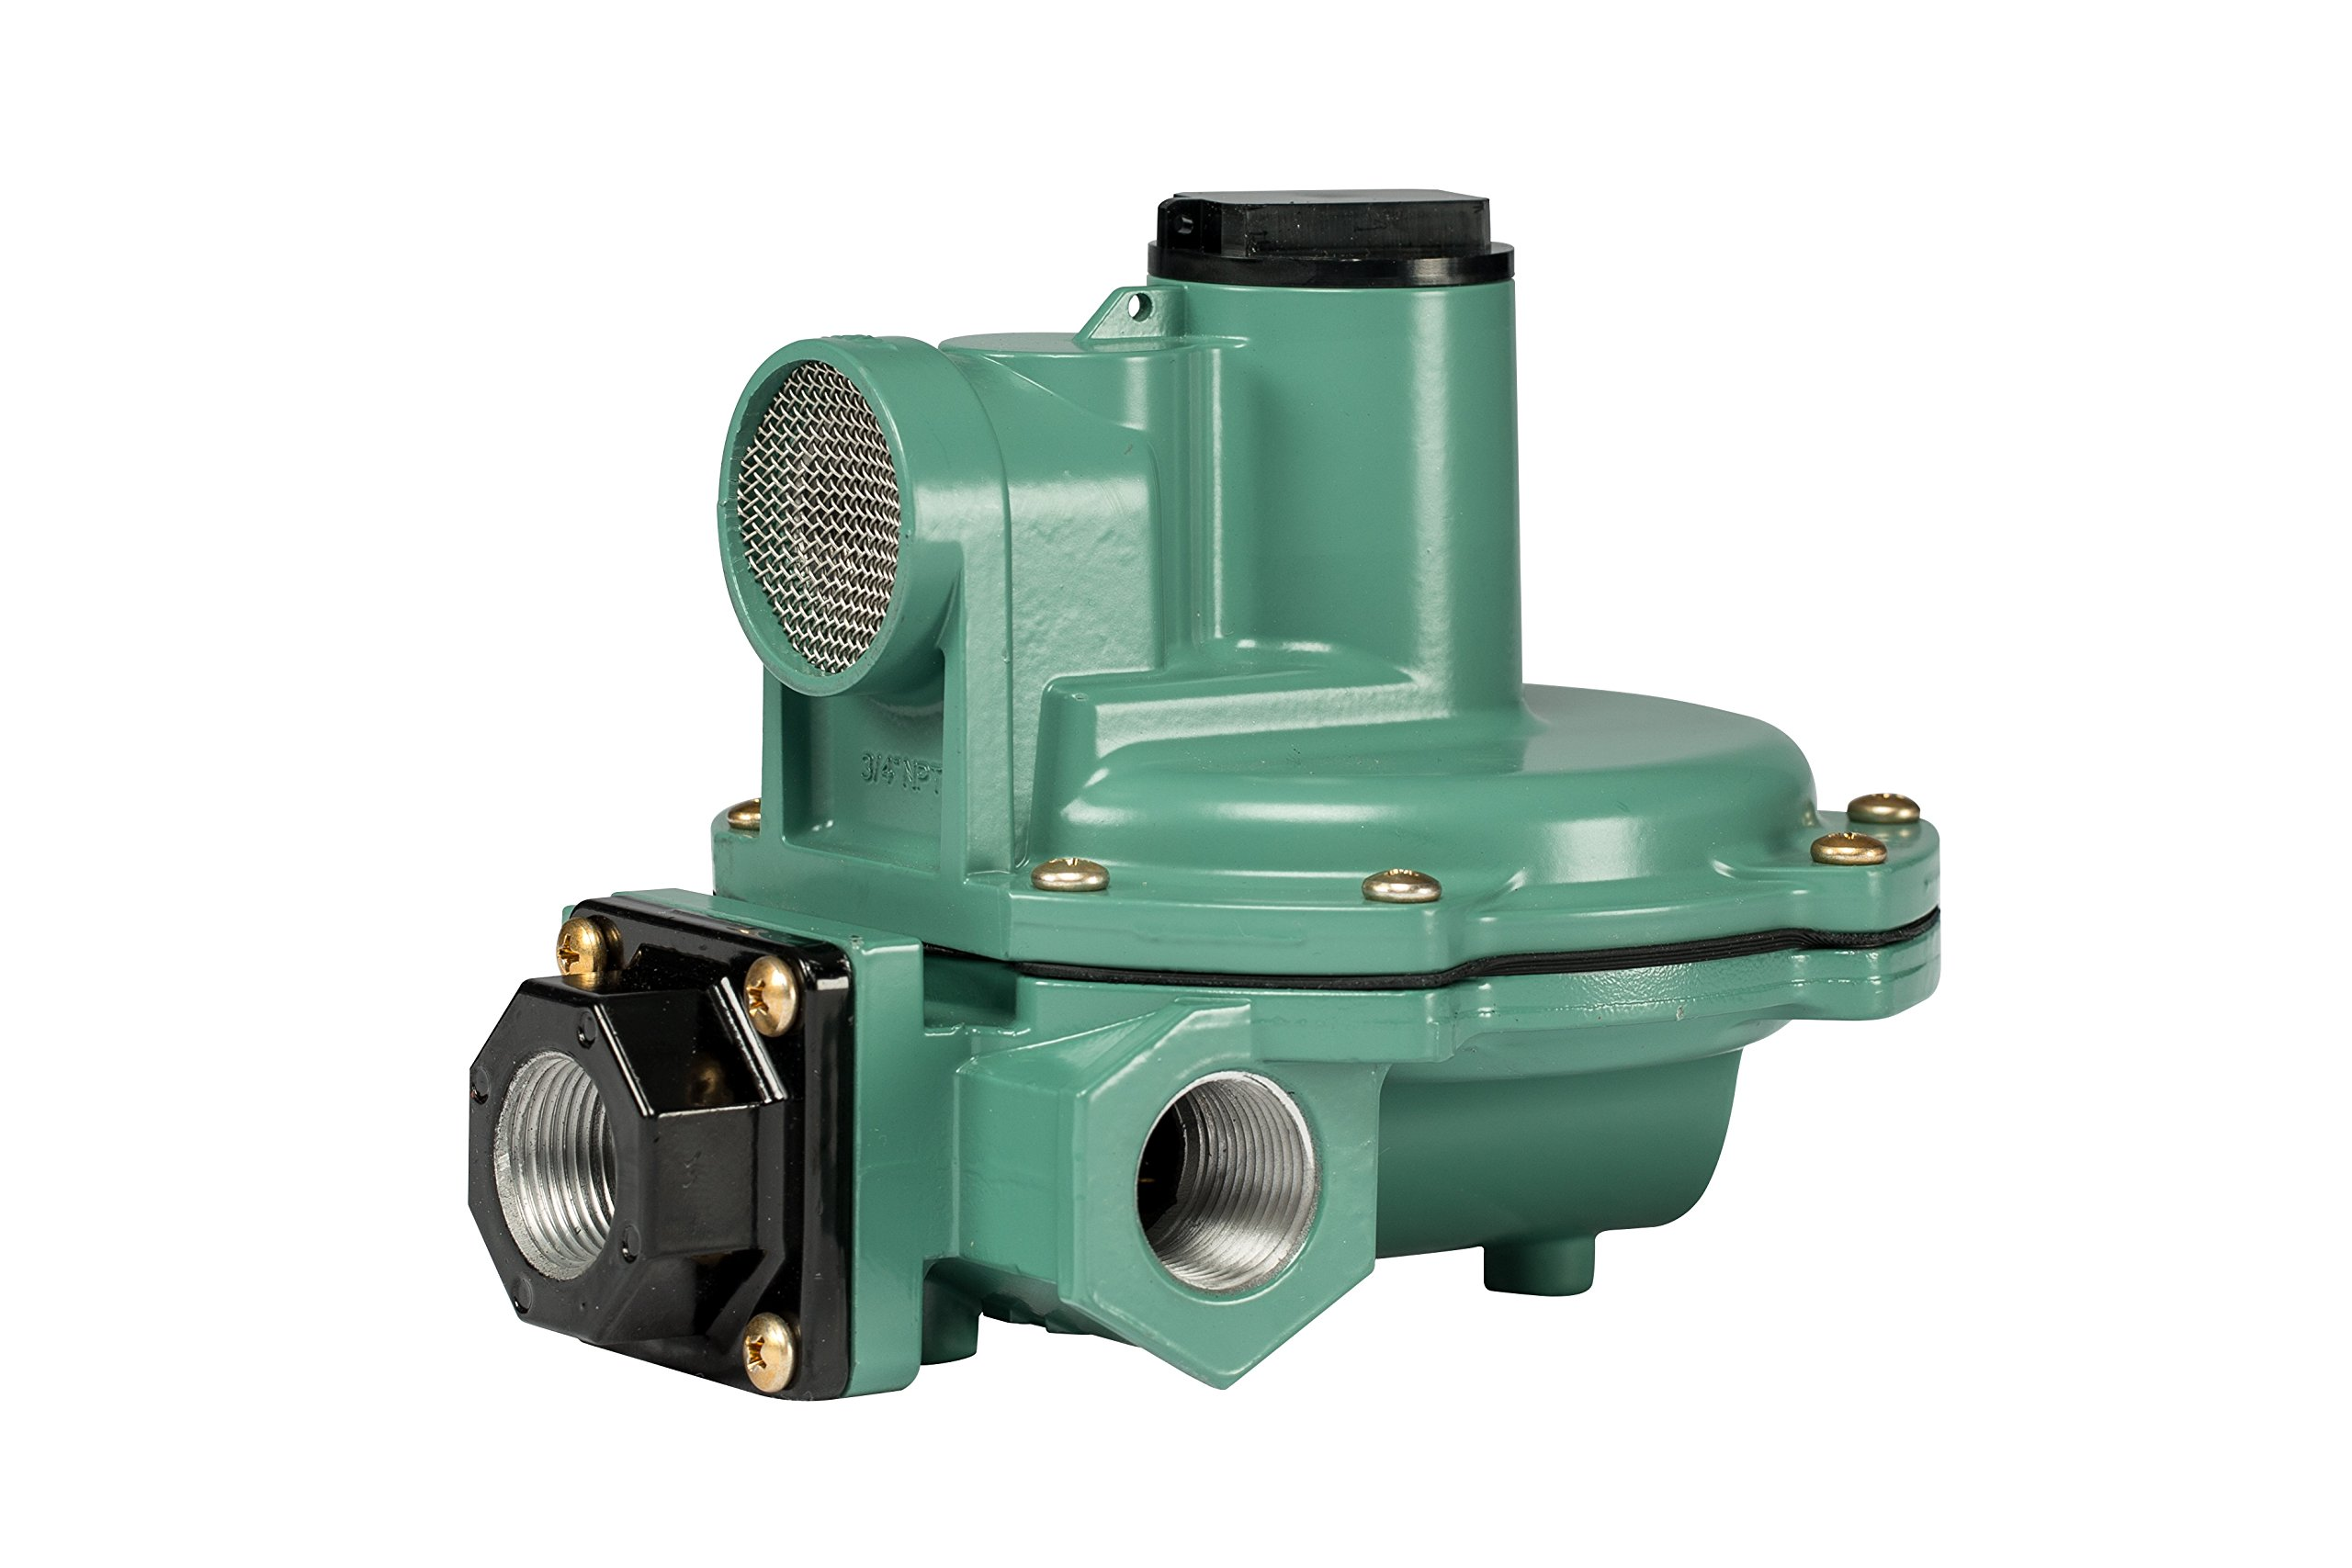 Emerson-Fisher LP-Gas Equipment R642-DFF 2nd Stage Regulator, Side Outlet, 9-13'' W.C Spring, 3/4'' x 3/4'' NPT